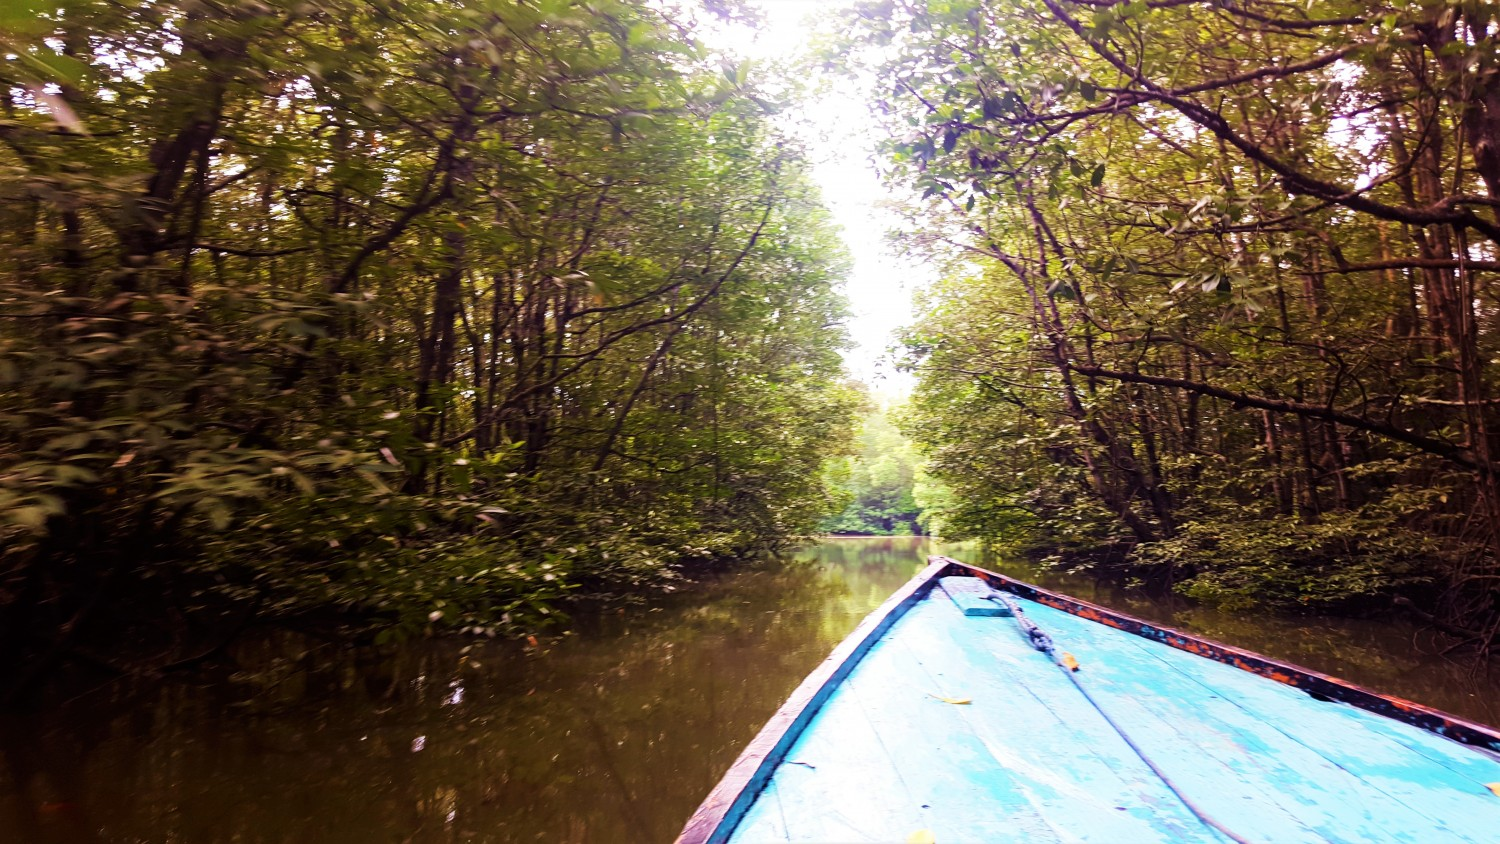 Boat through the mangroves to spy proboscis monkeys. Balikpapan, Indonesia